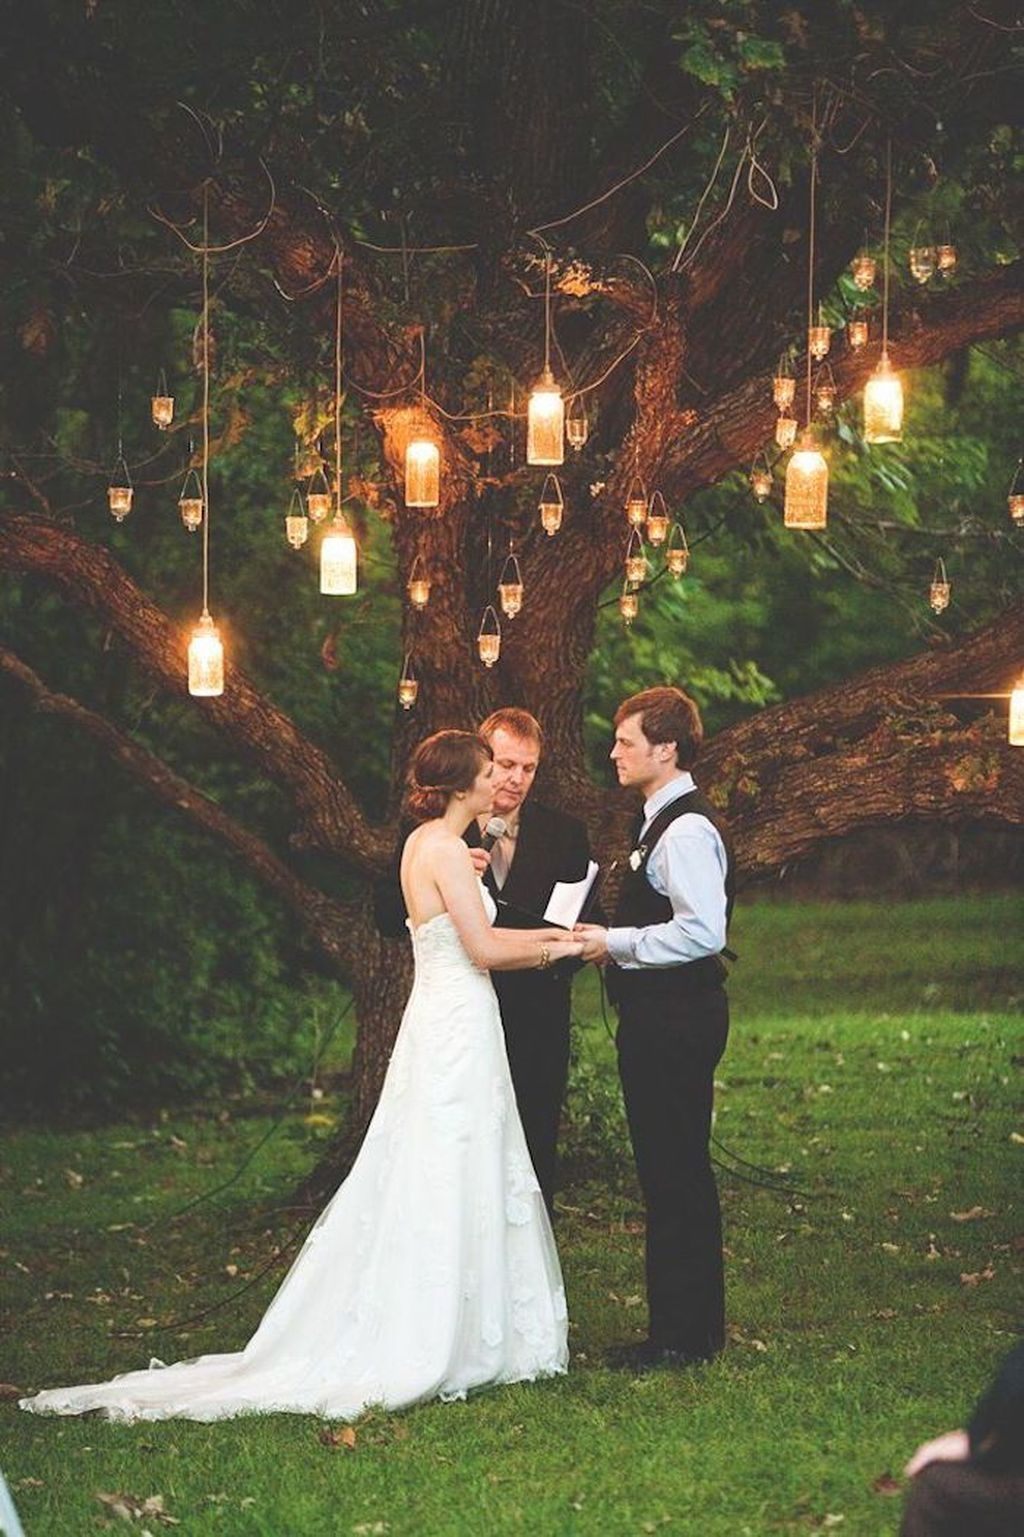 Beautiful Backyard Wedding Decor Ideas To Get A Romantic Impression 01